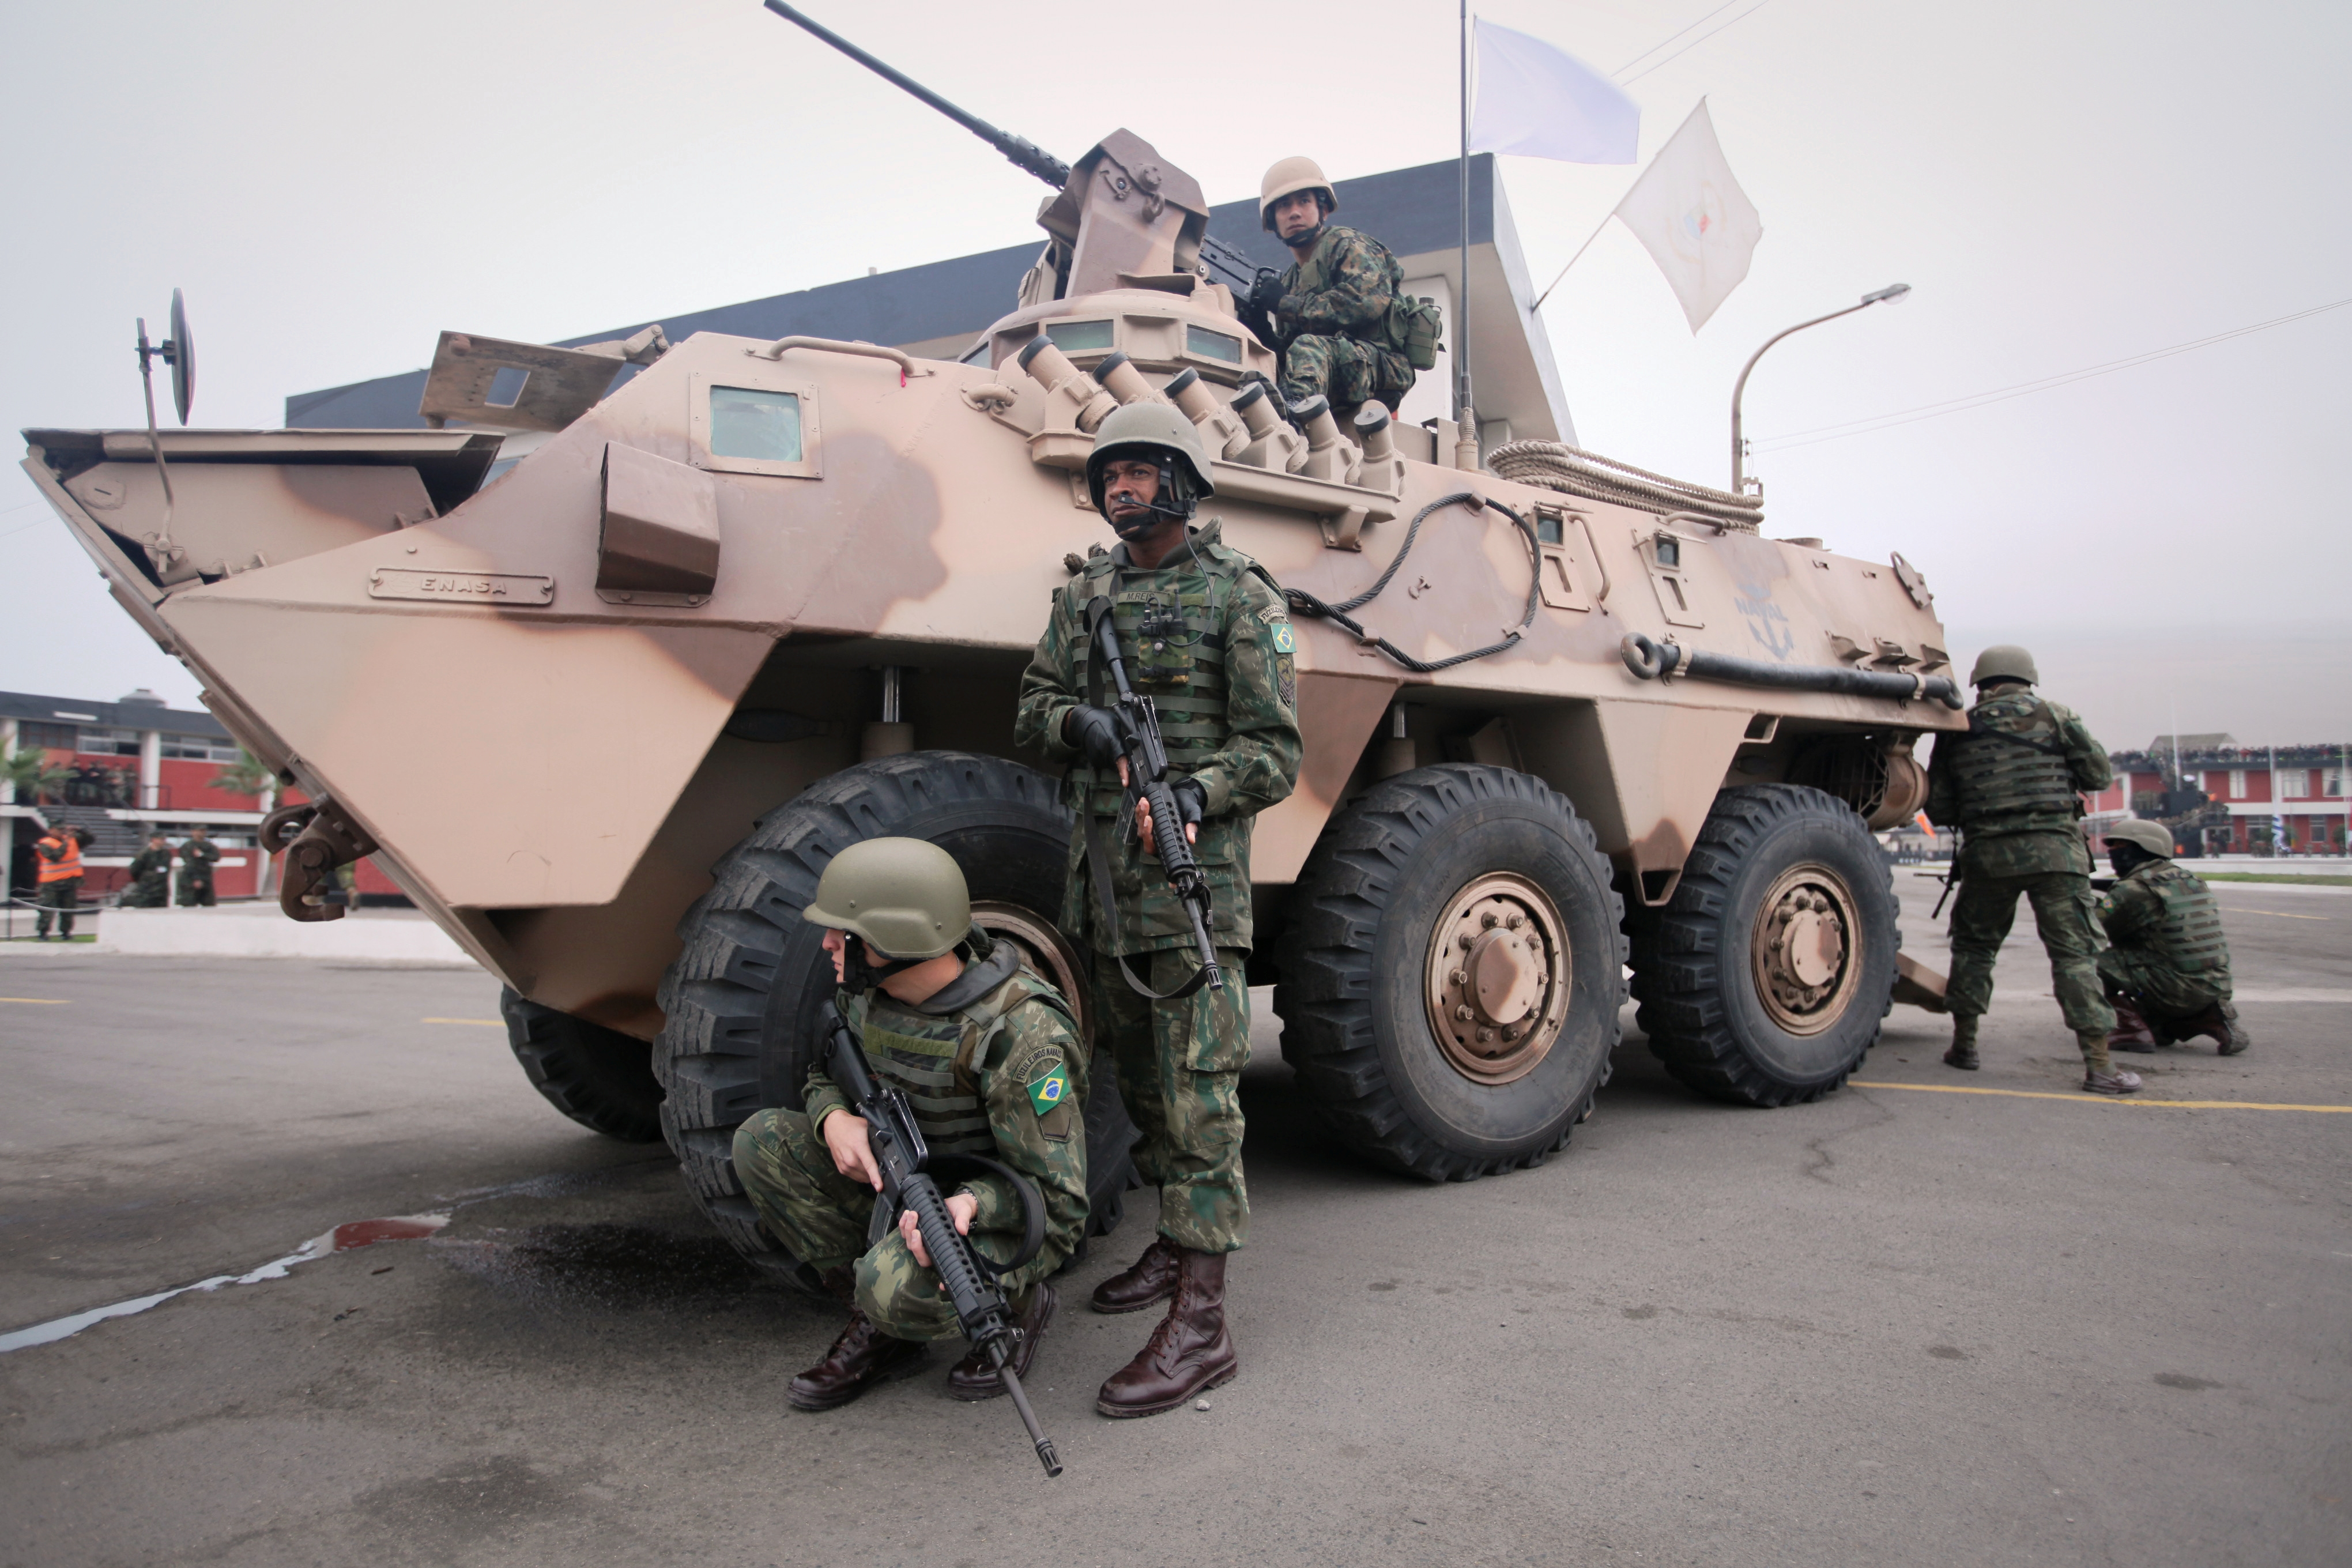 File:Peruvian BMR armored personnel carrier.JPG ...